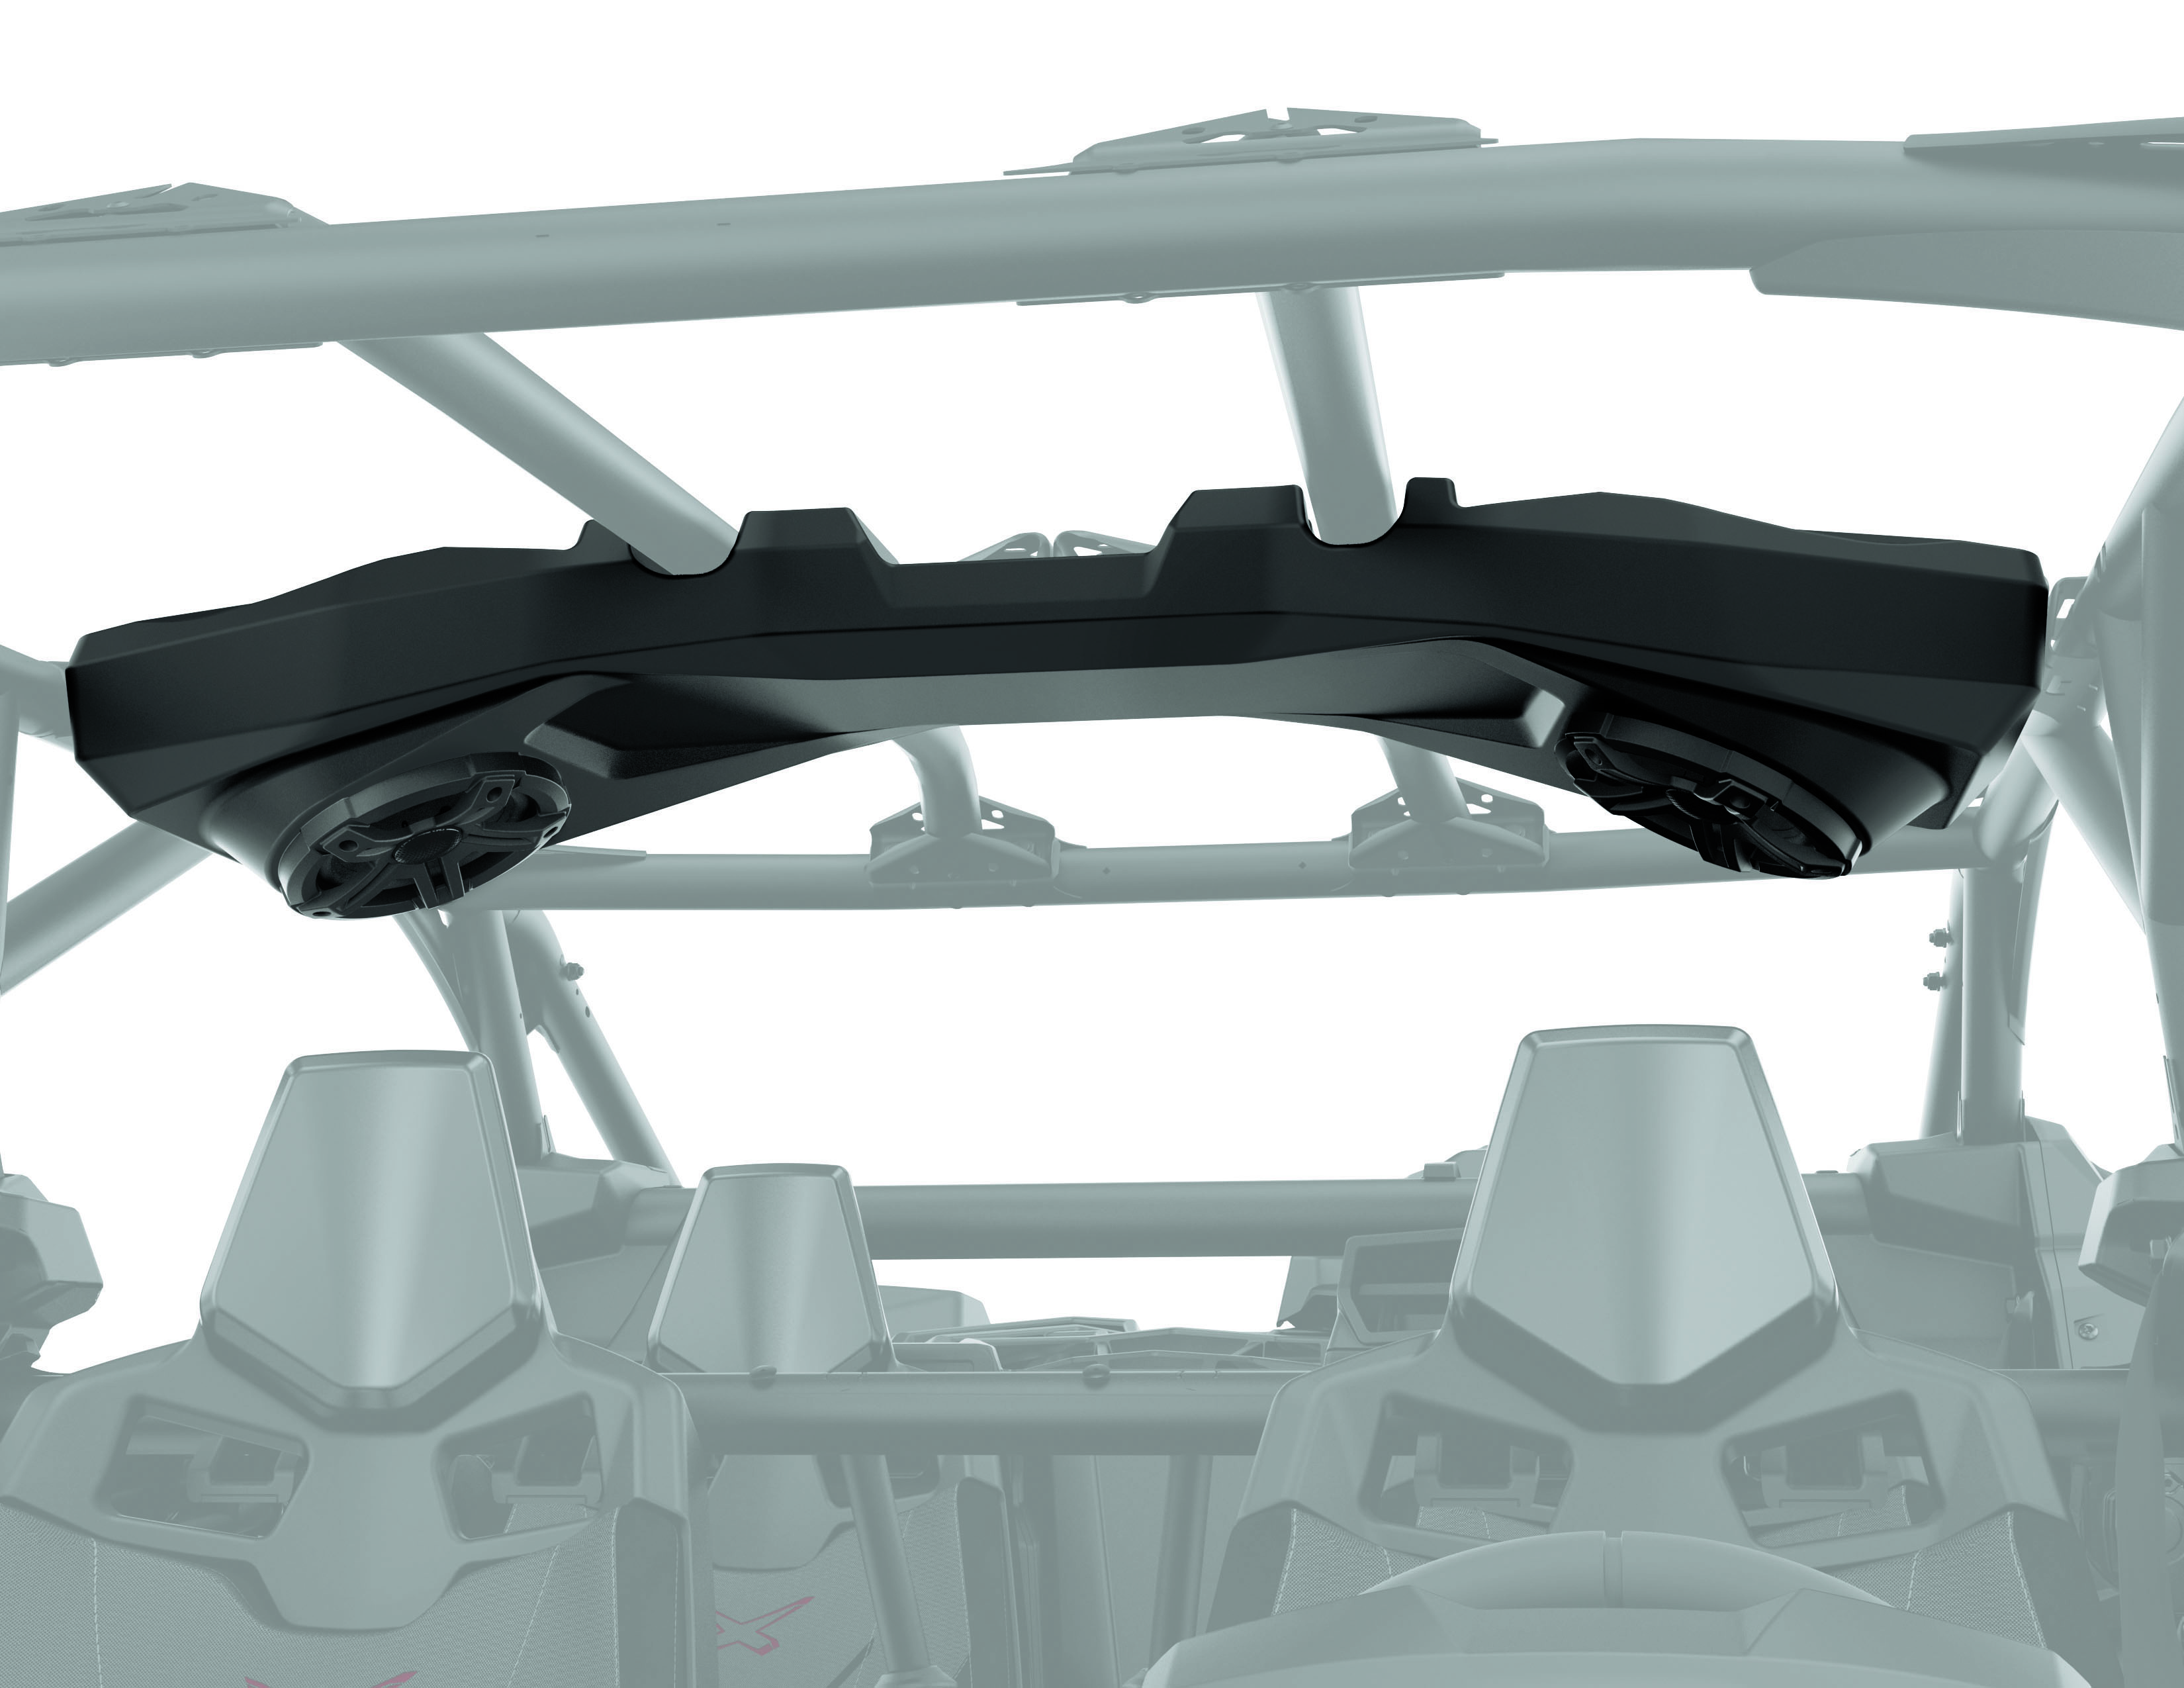 New Can-Am Accessories - Convenient Solutions to Enrich any